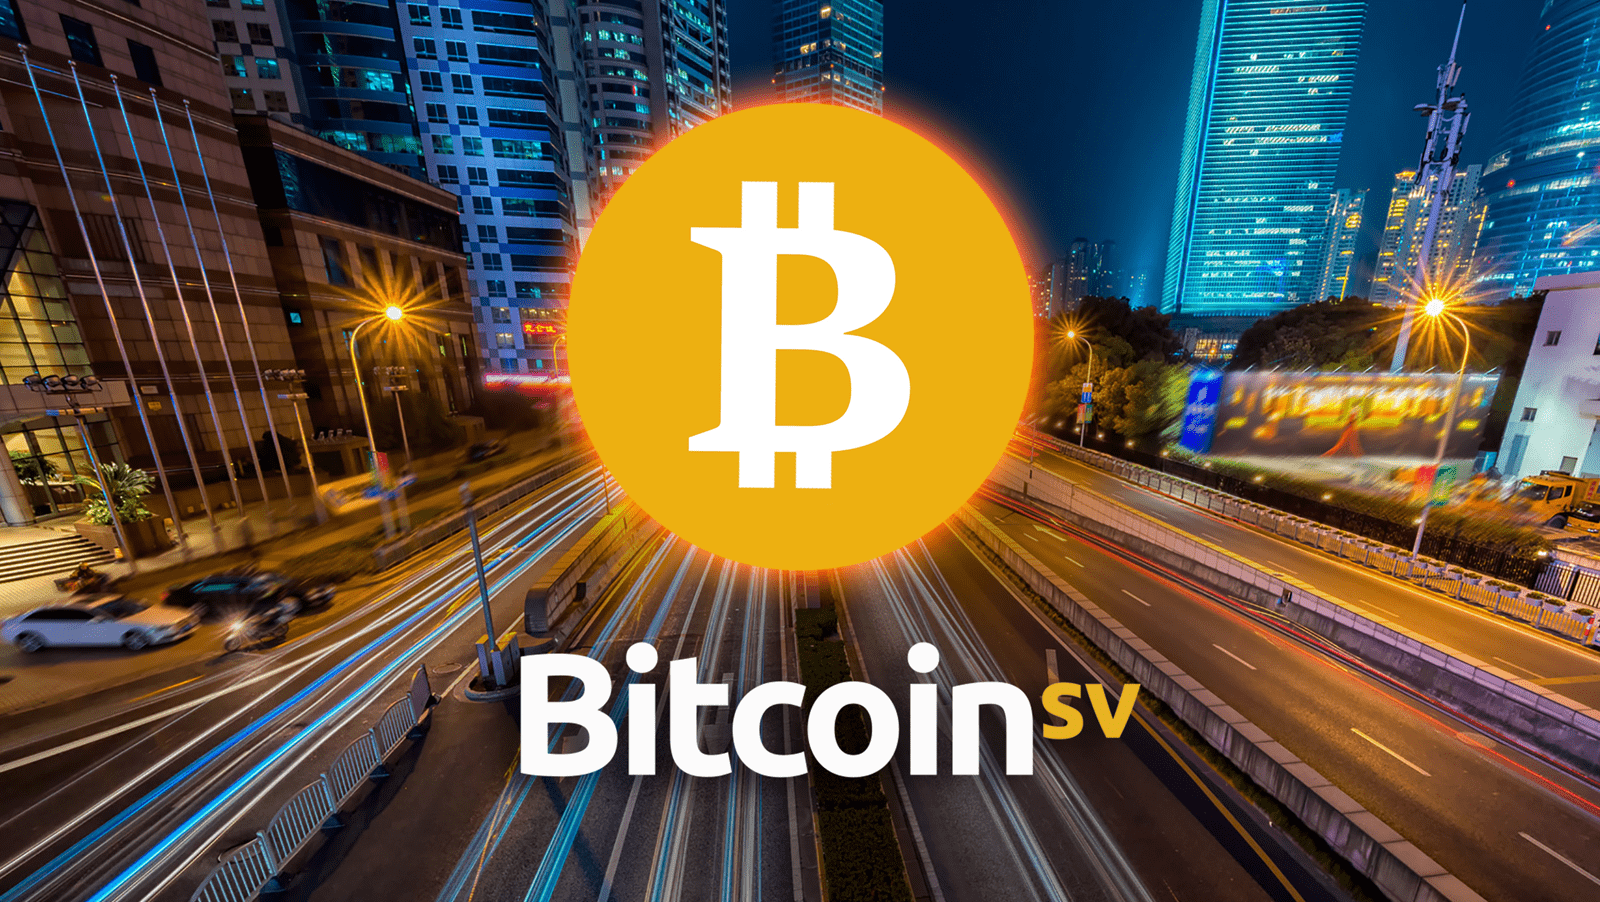 Bitcoin SV Interview hosted by Tom Lee